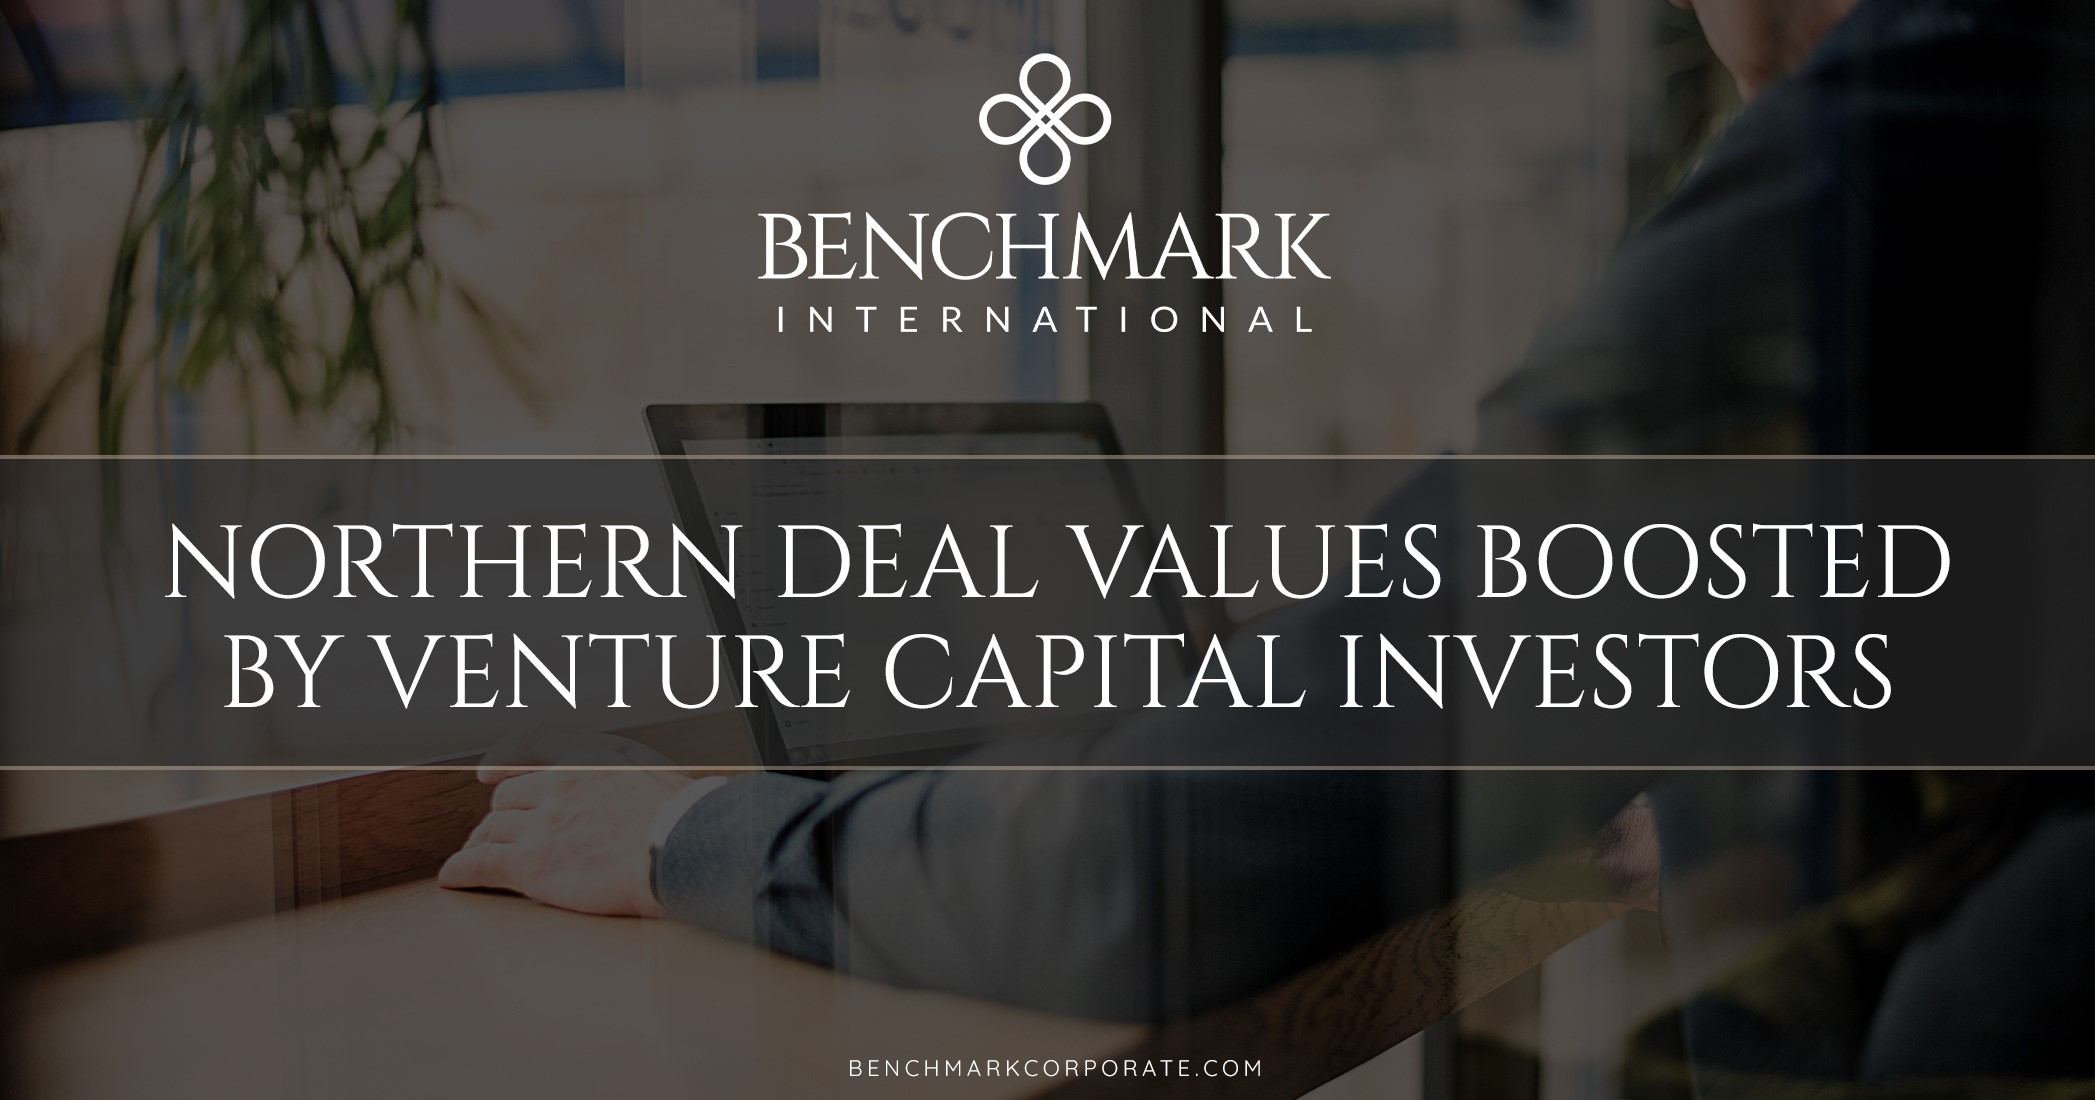 Northern Deal Values Boosted by Venture Capital Investors